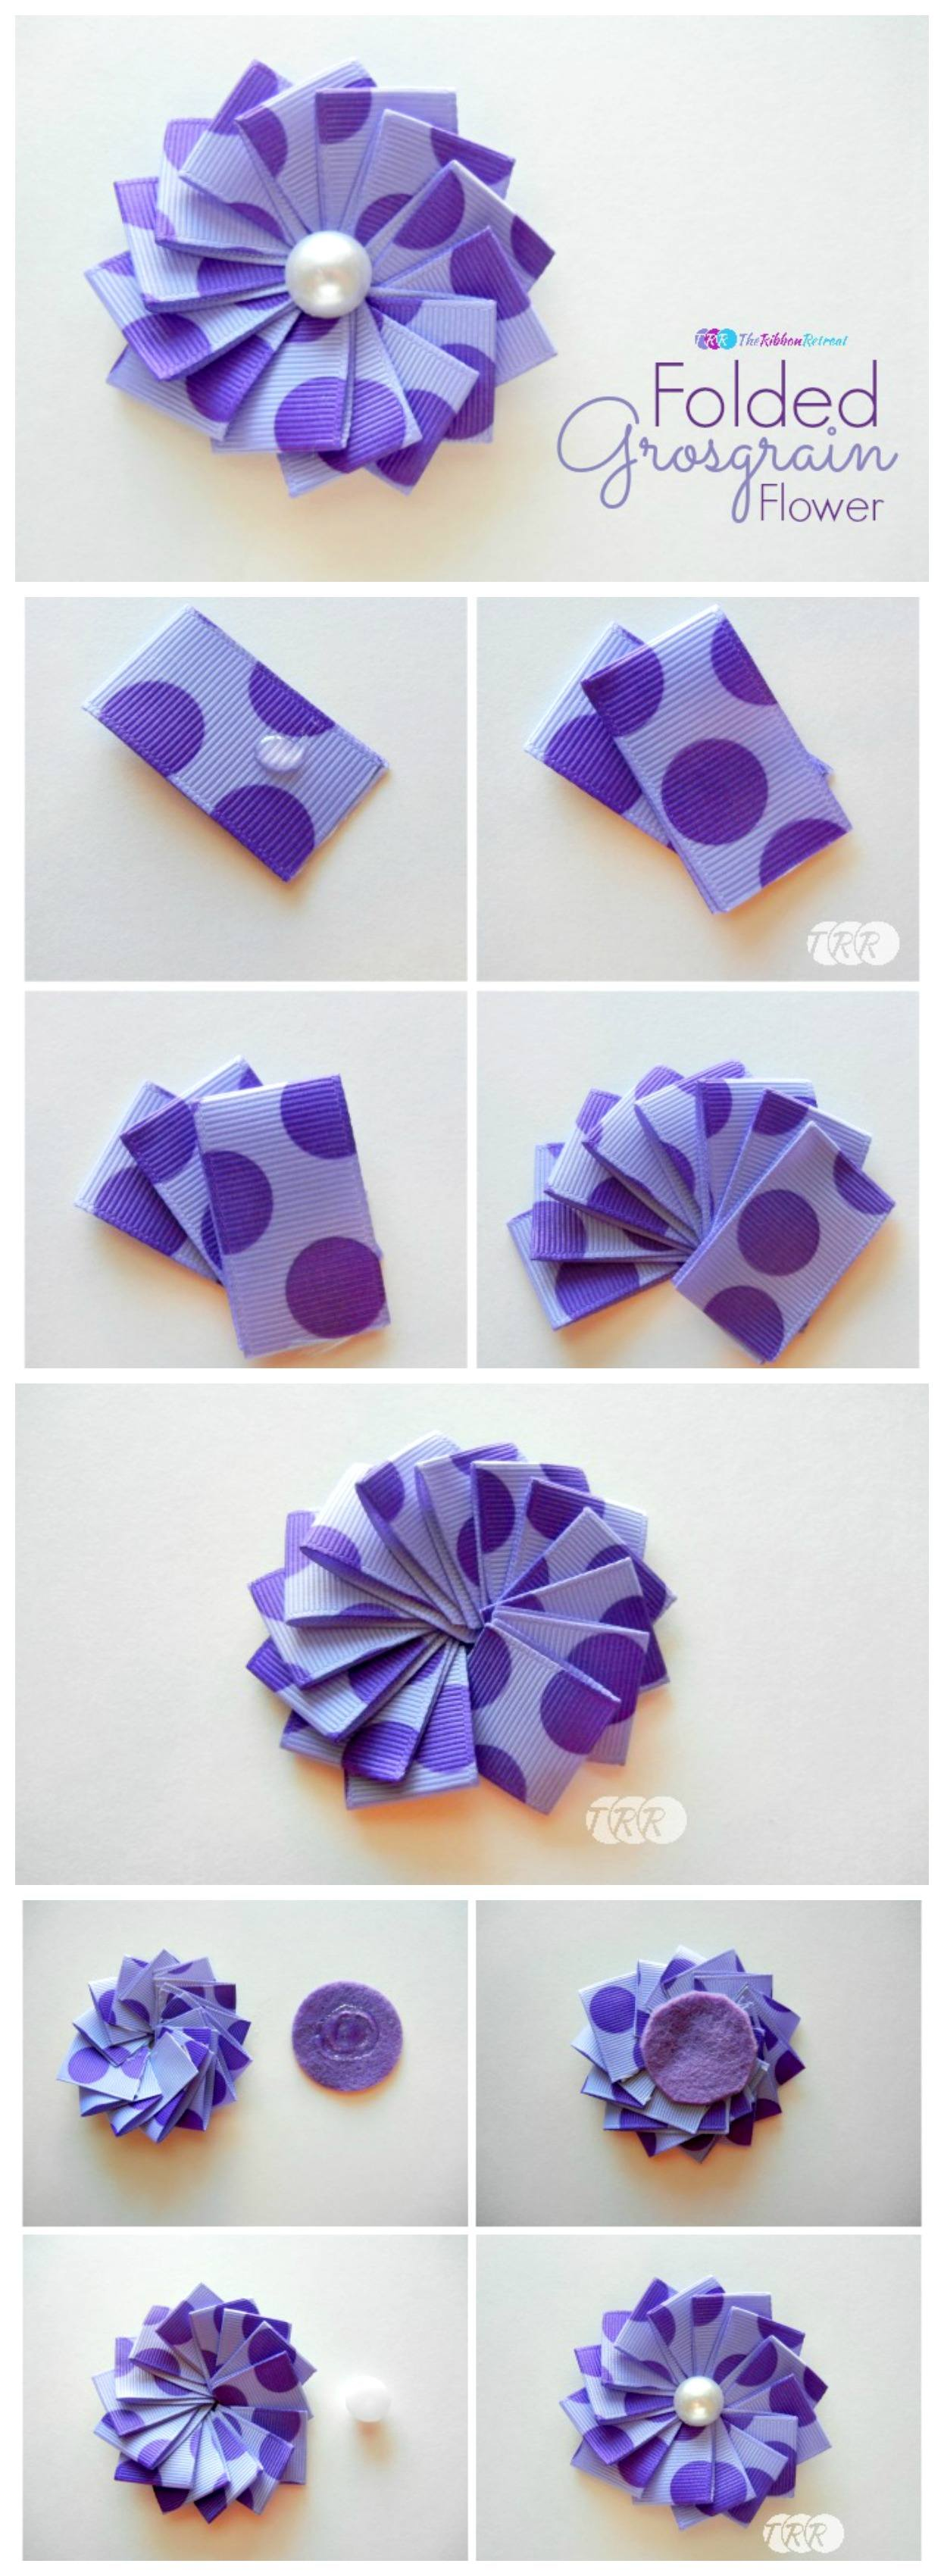 Folded Grosgrain Ribbon - The Ribbon Retreat Blog